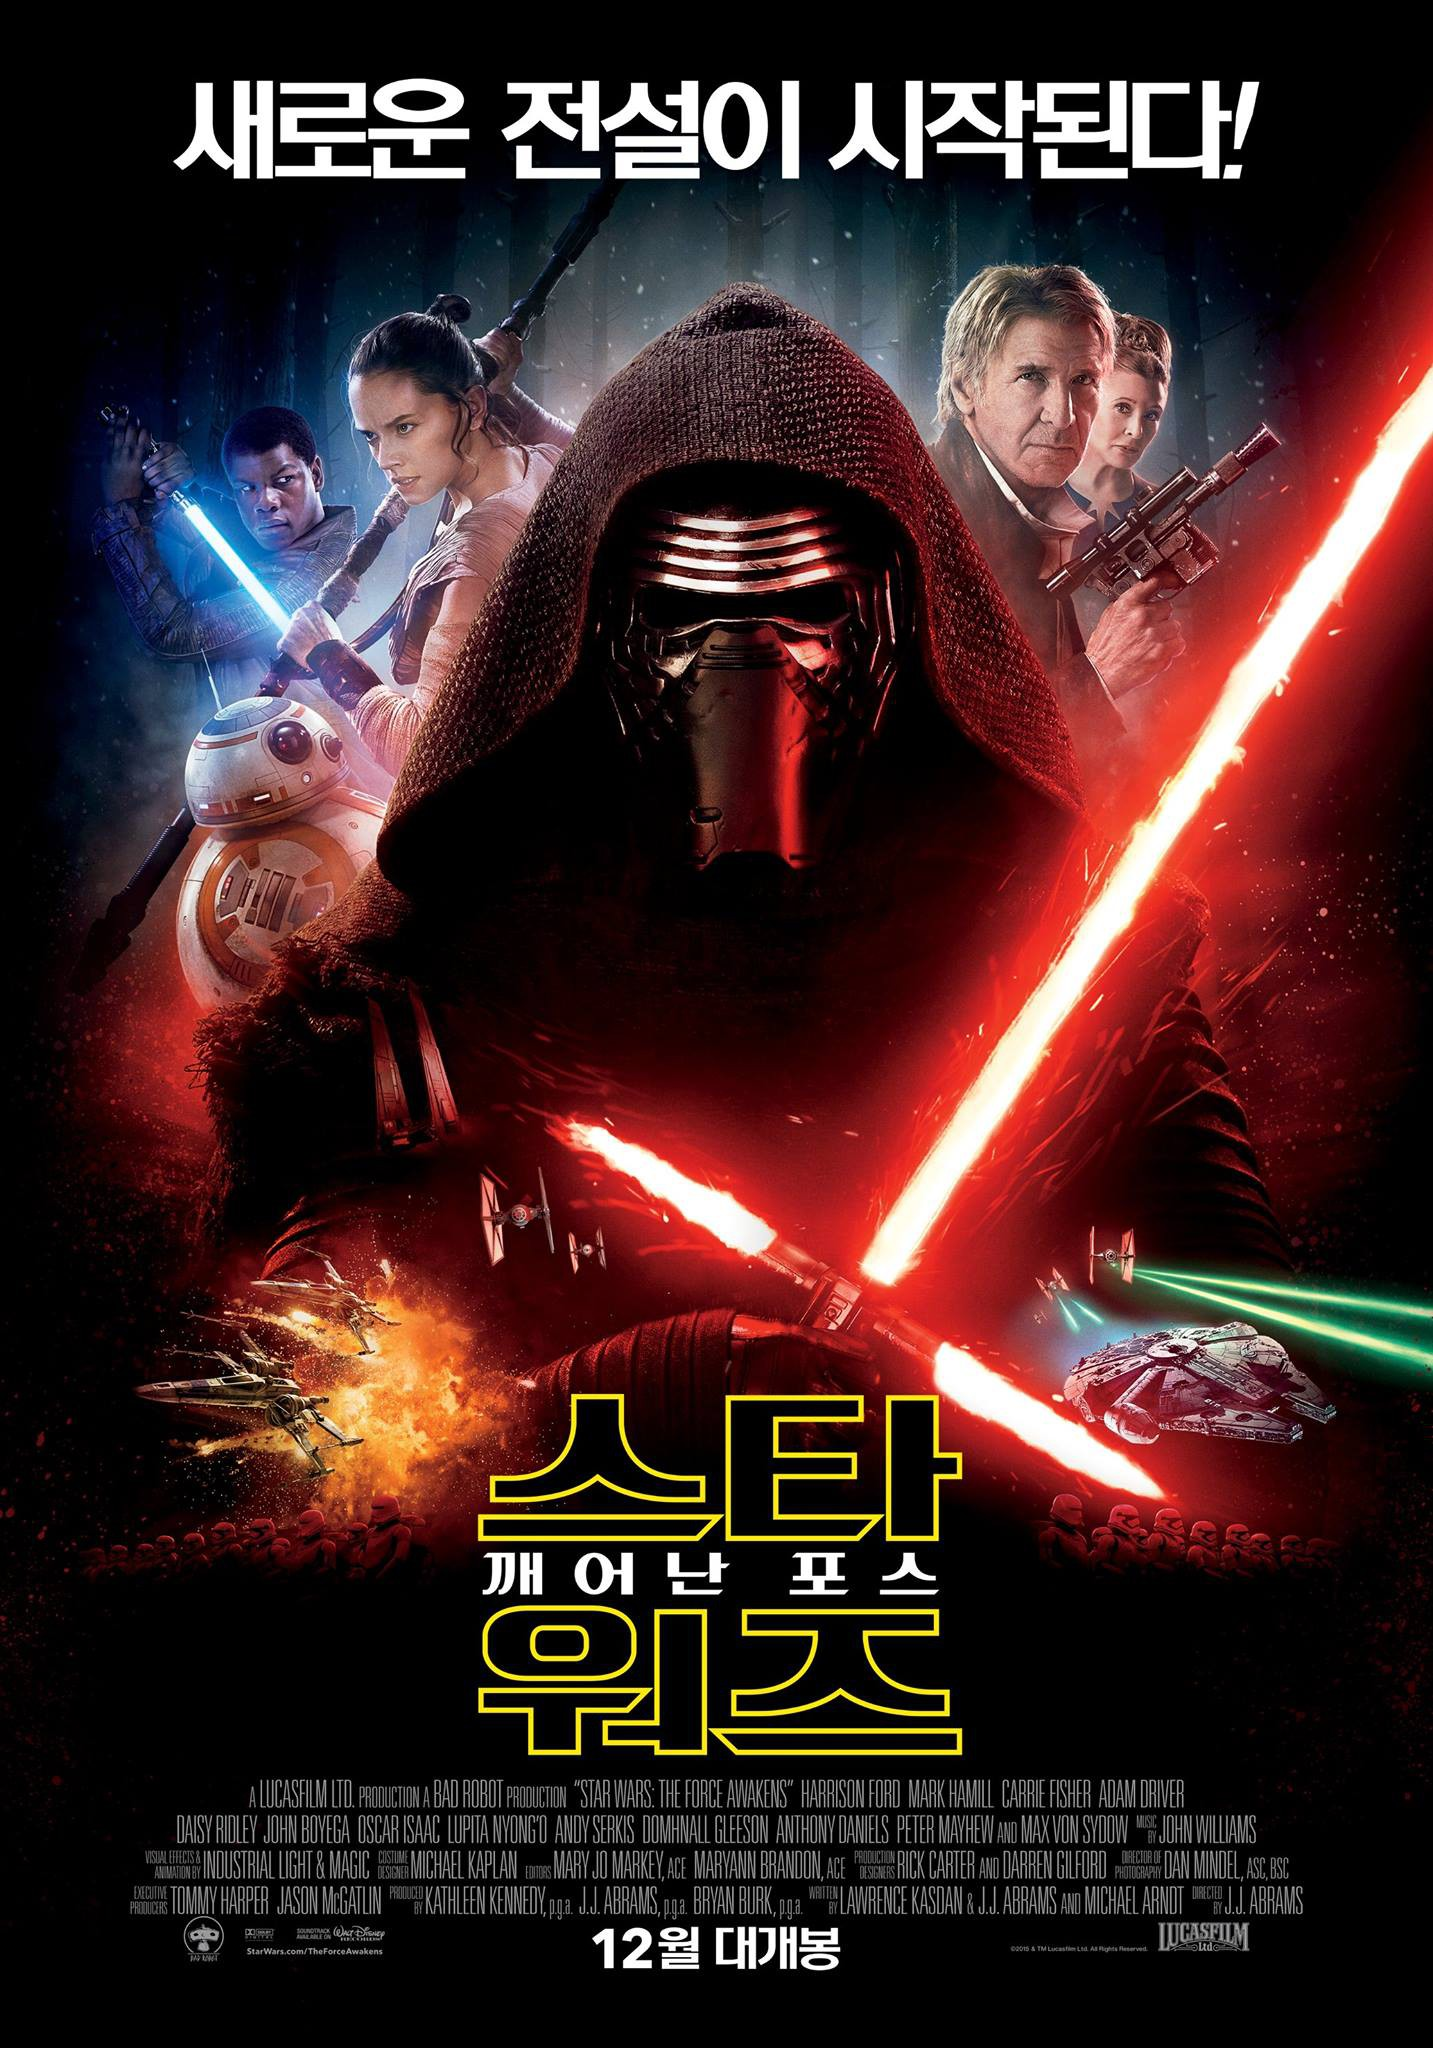 Star Wars Episode VII The Force Awakens-International-06Novembro2015